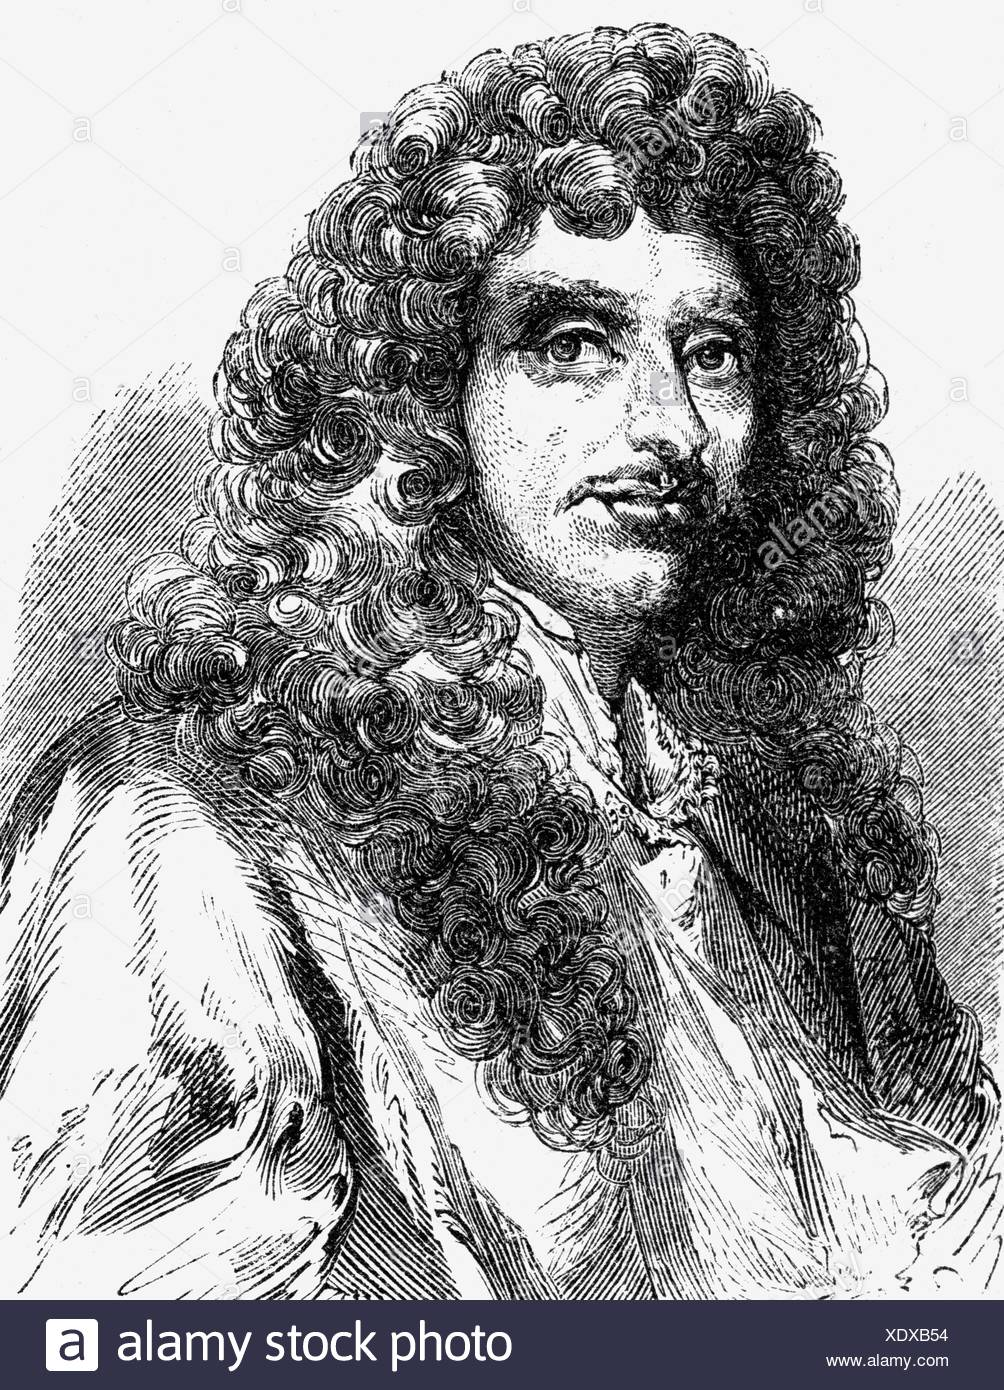 Huygens, Christiaan, 14.4.1629 - 8.7.1695, Dutch natural scientist, portrait, wood engraving, 19th century, Additional-Rights-Clearances-NA - Stock Image